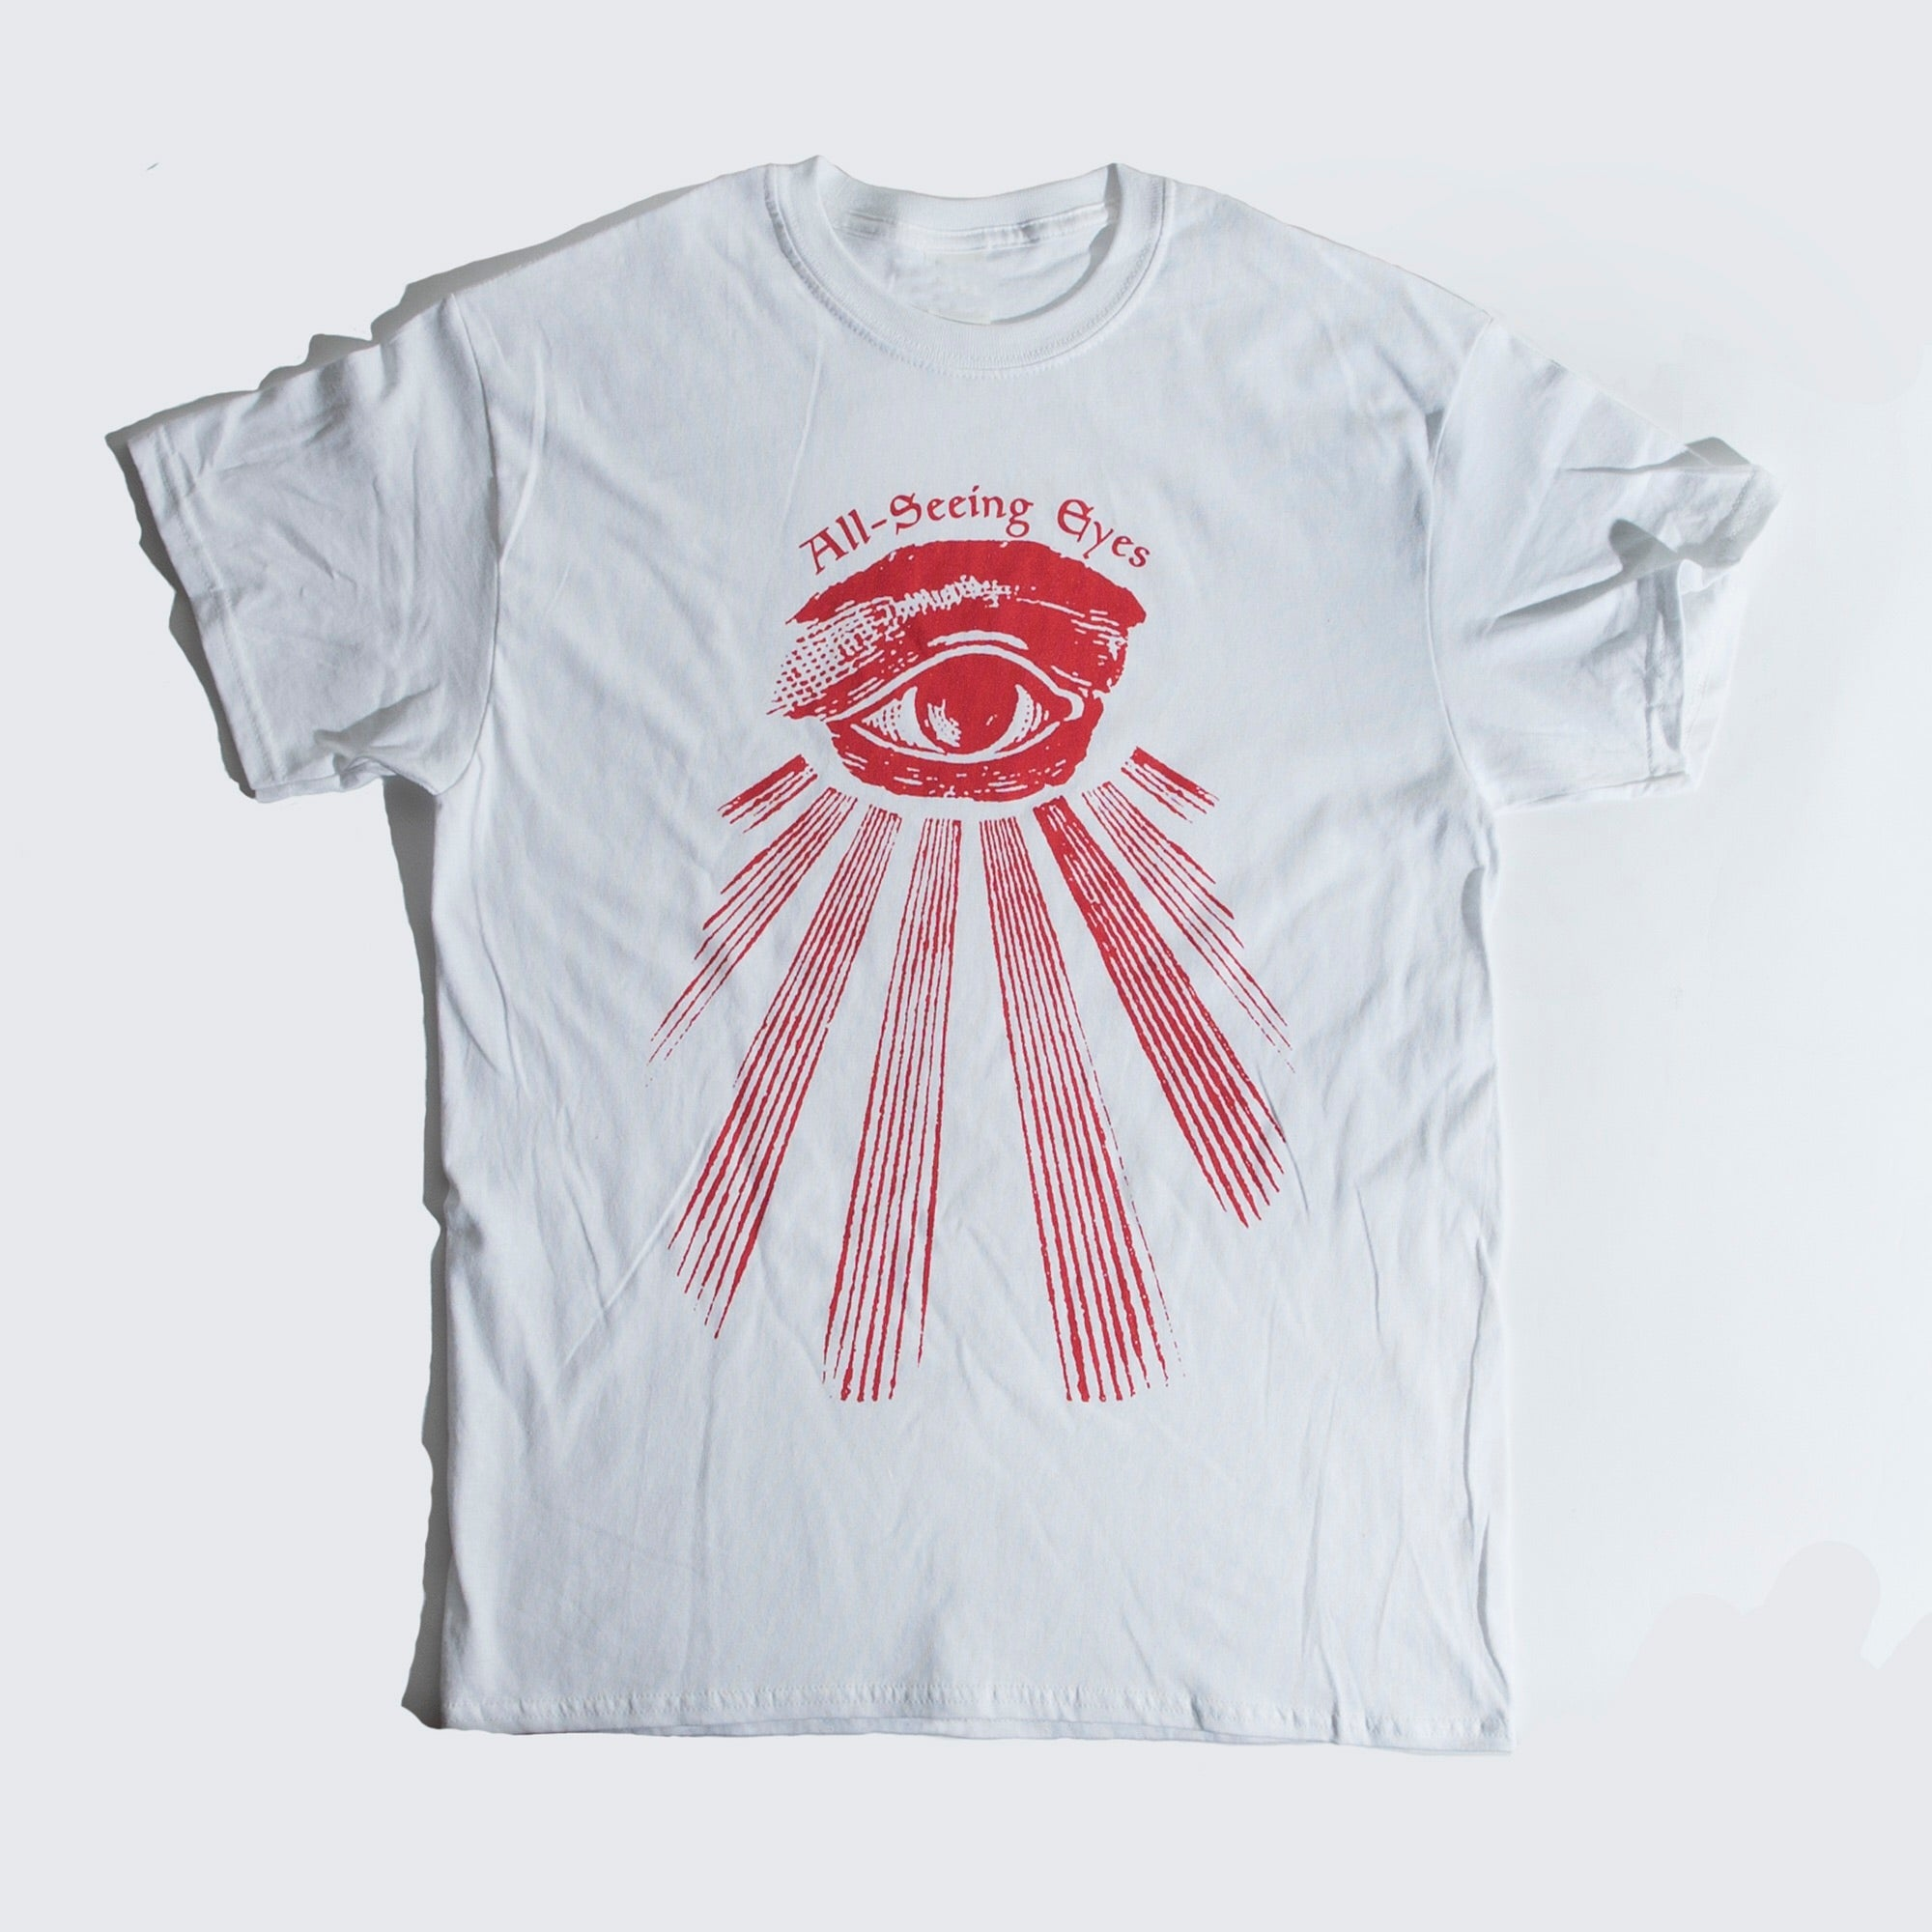 "All-Seeing Eyes - ""Shining Path"" T-Shirt"